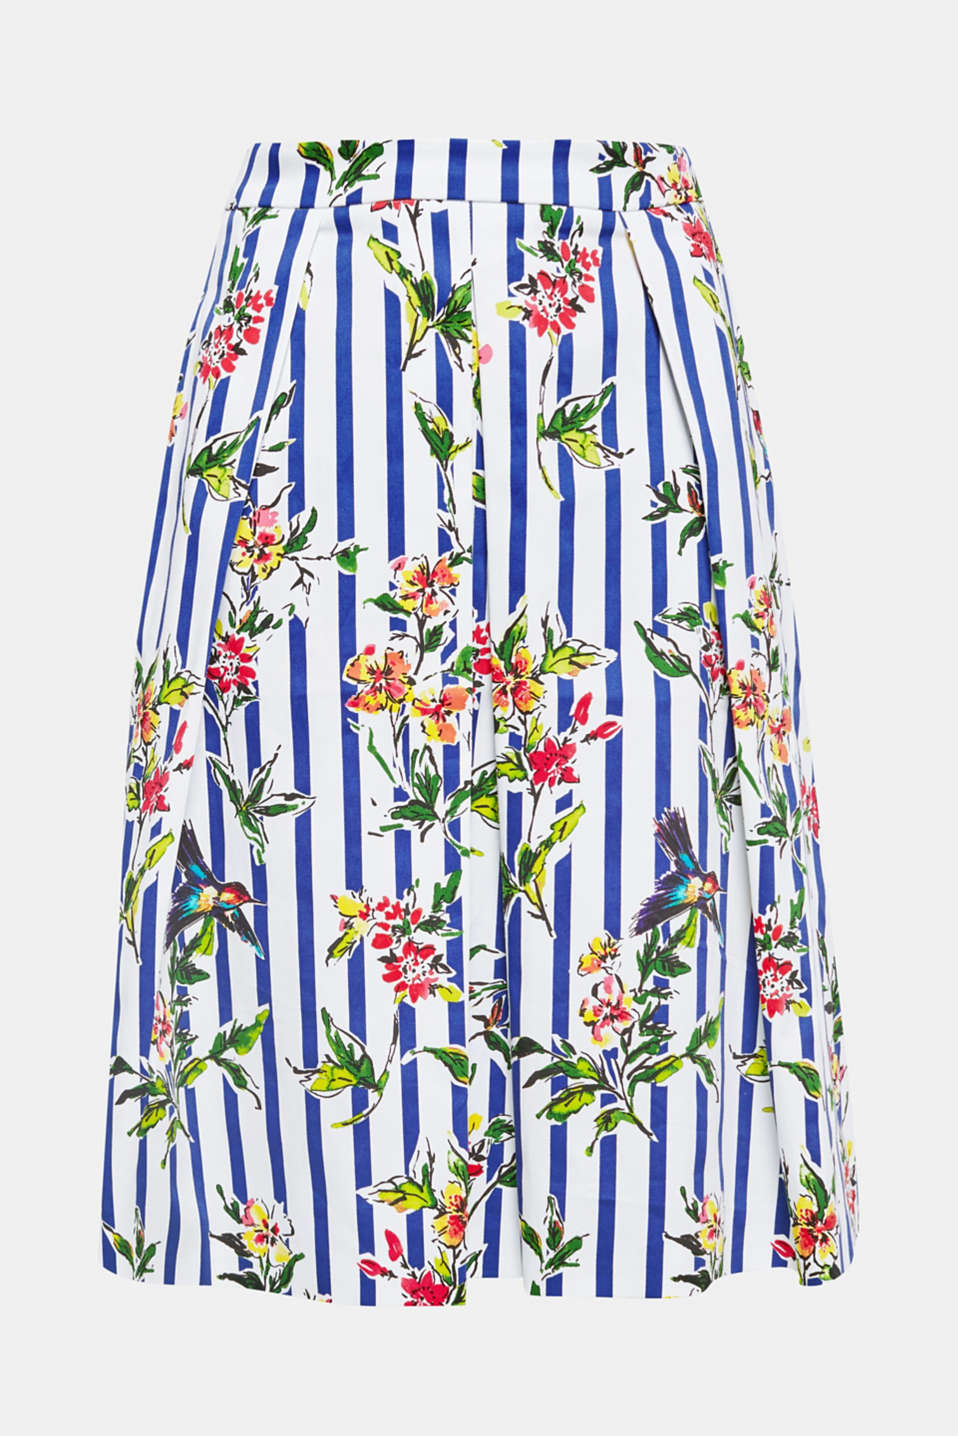 A must have: the colourful combination of patterns and the trendy midi length make this swirling skirt so summery and stylish!